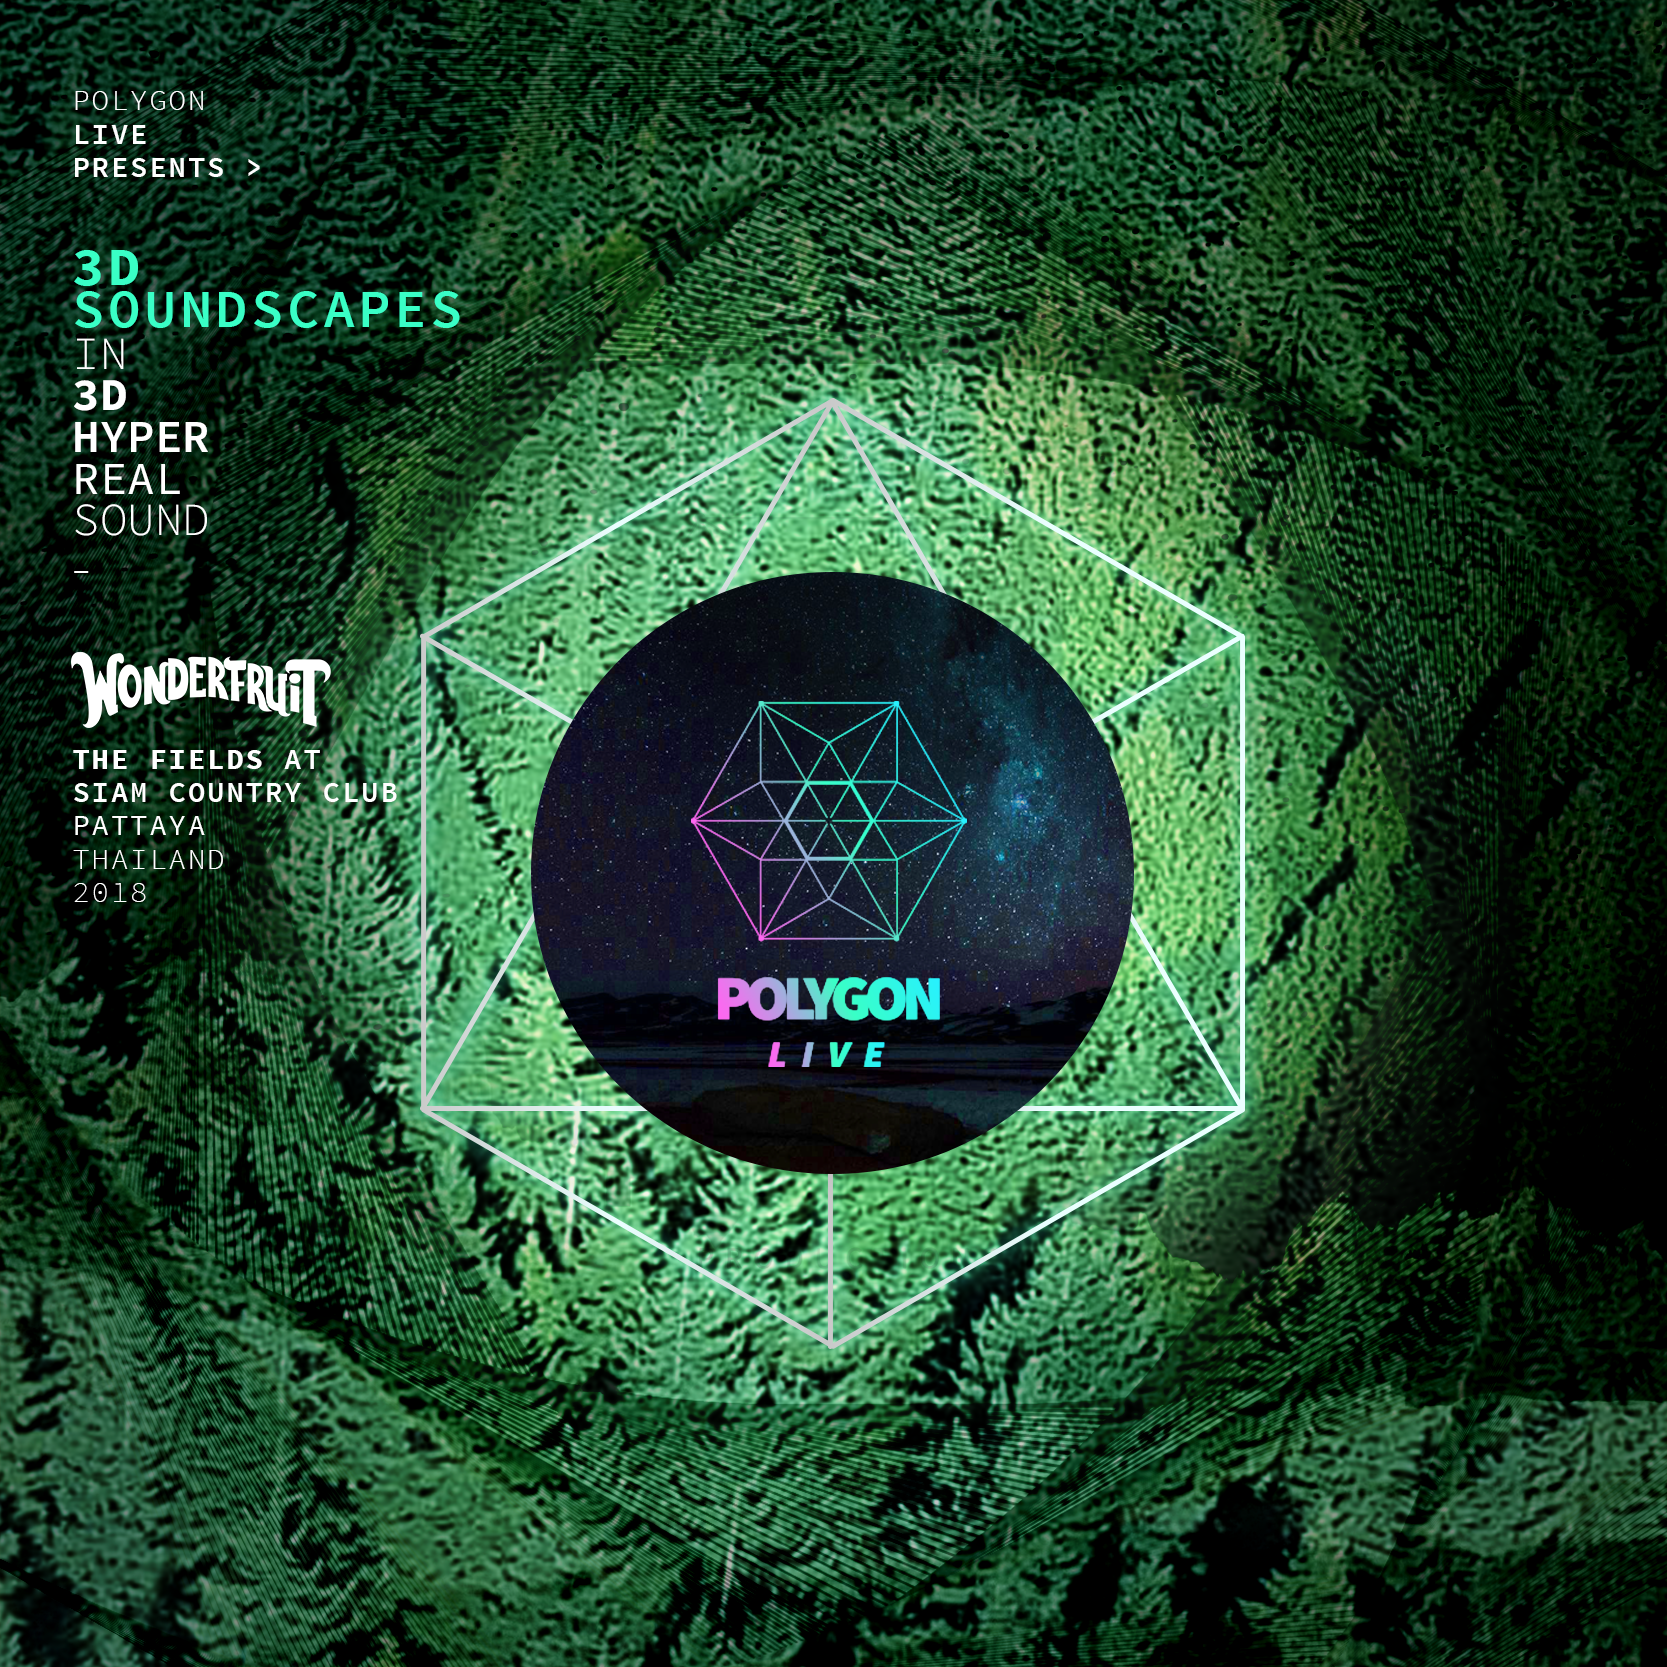 POLYGON_WF2018_ARTIST_3D_Soundscapes